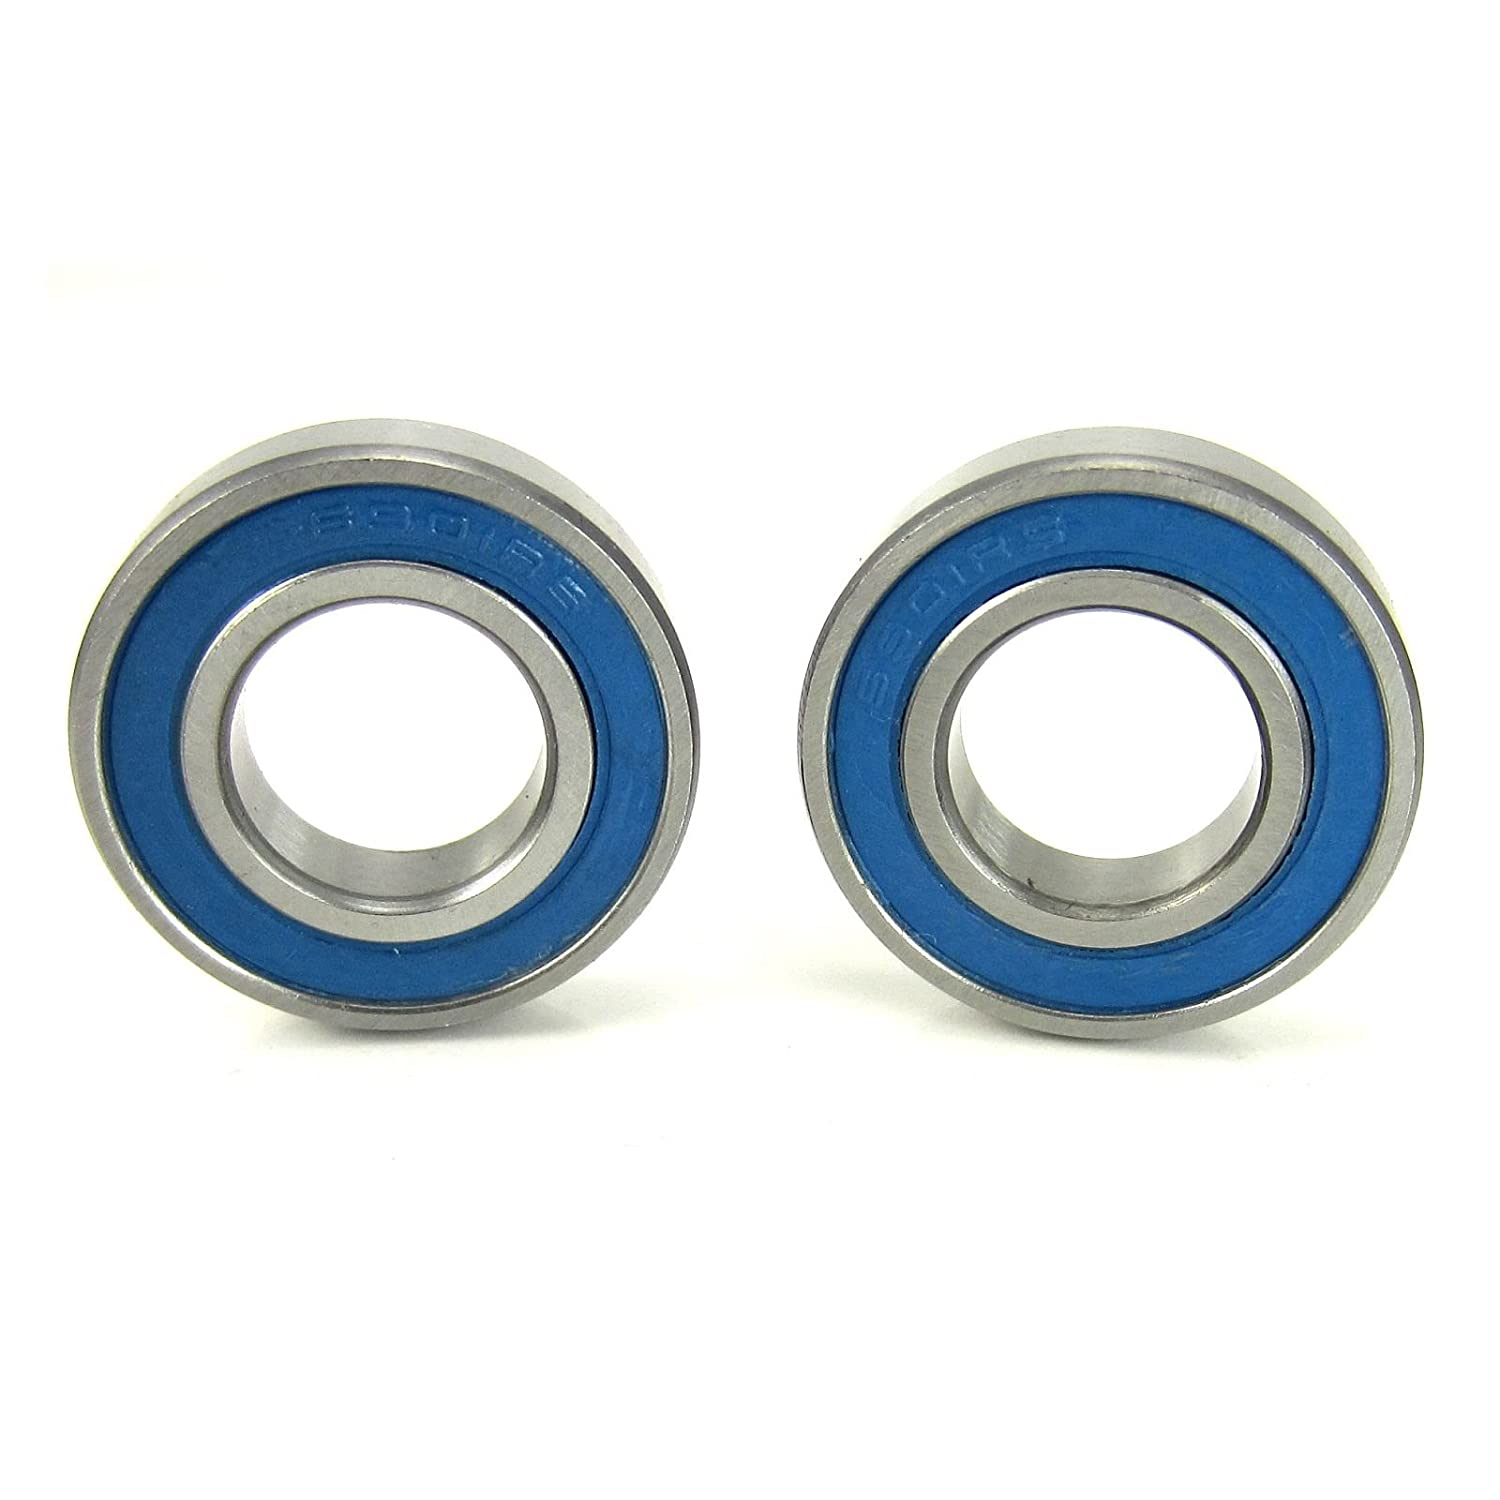 12x24x6mm Precision Ball Bearings ABEC 3 Blue Rubber Seals (2)